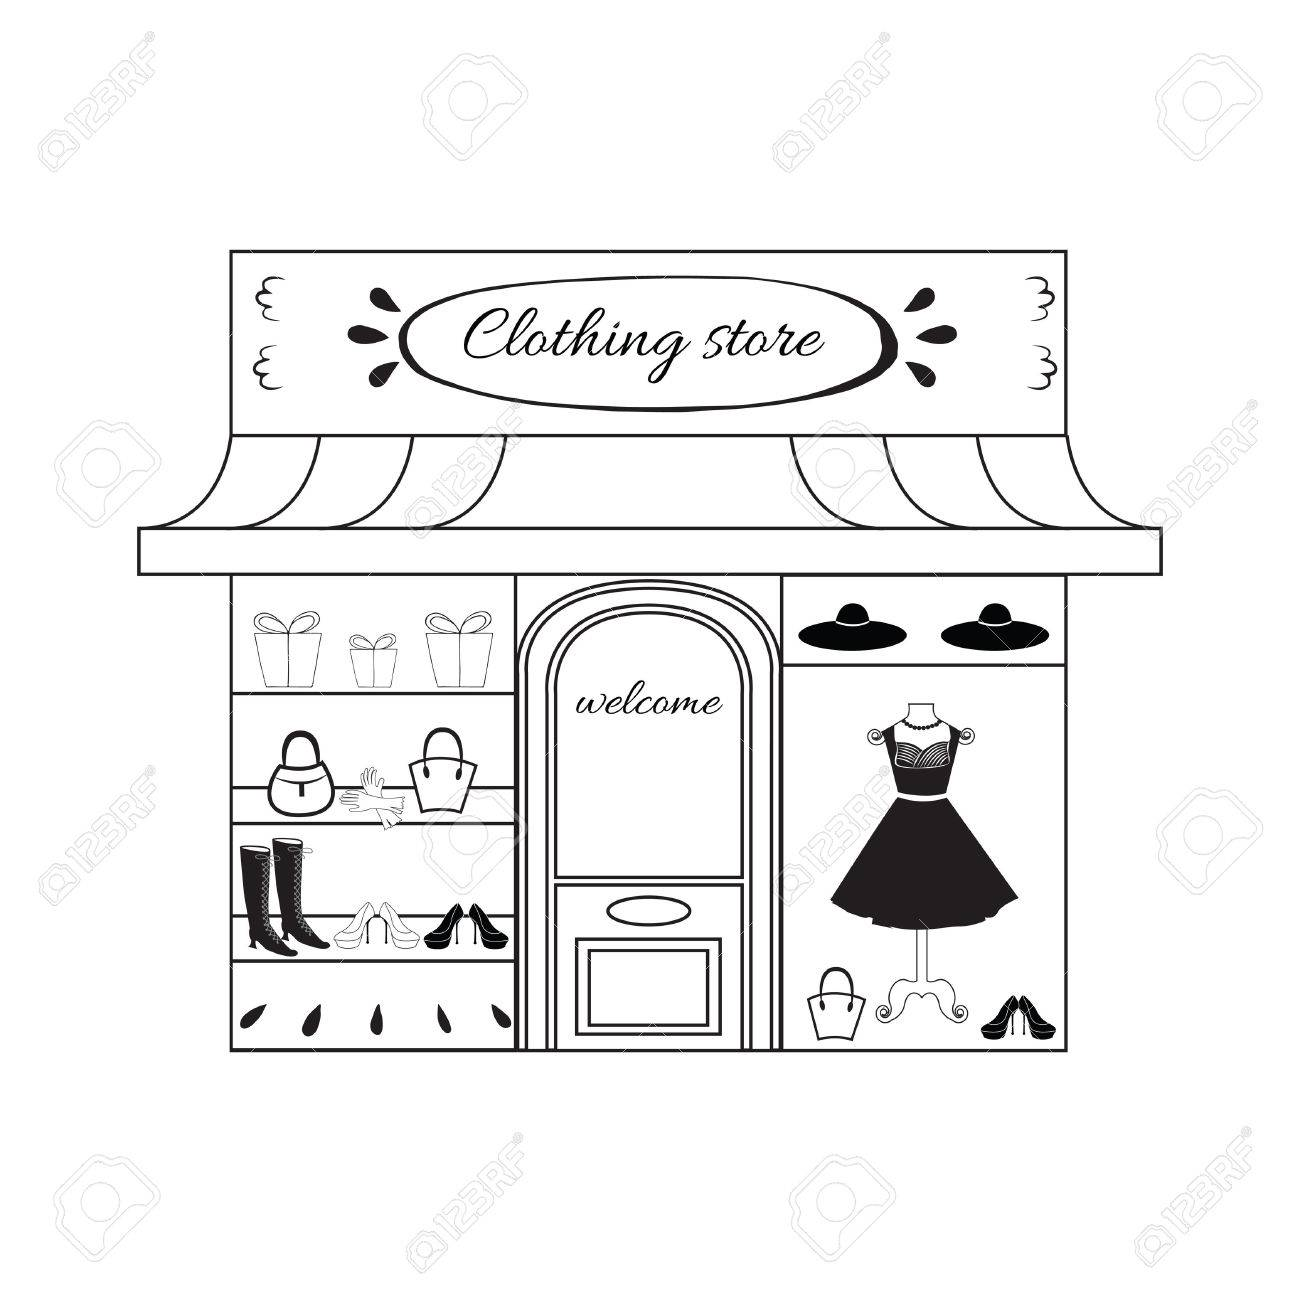 Boutique Clipart Black And White.